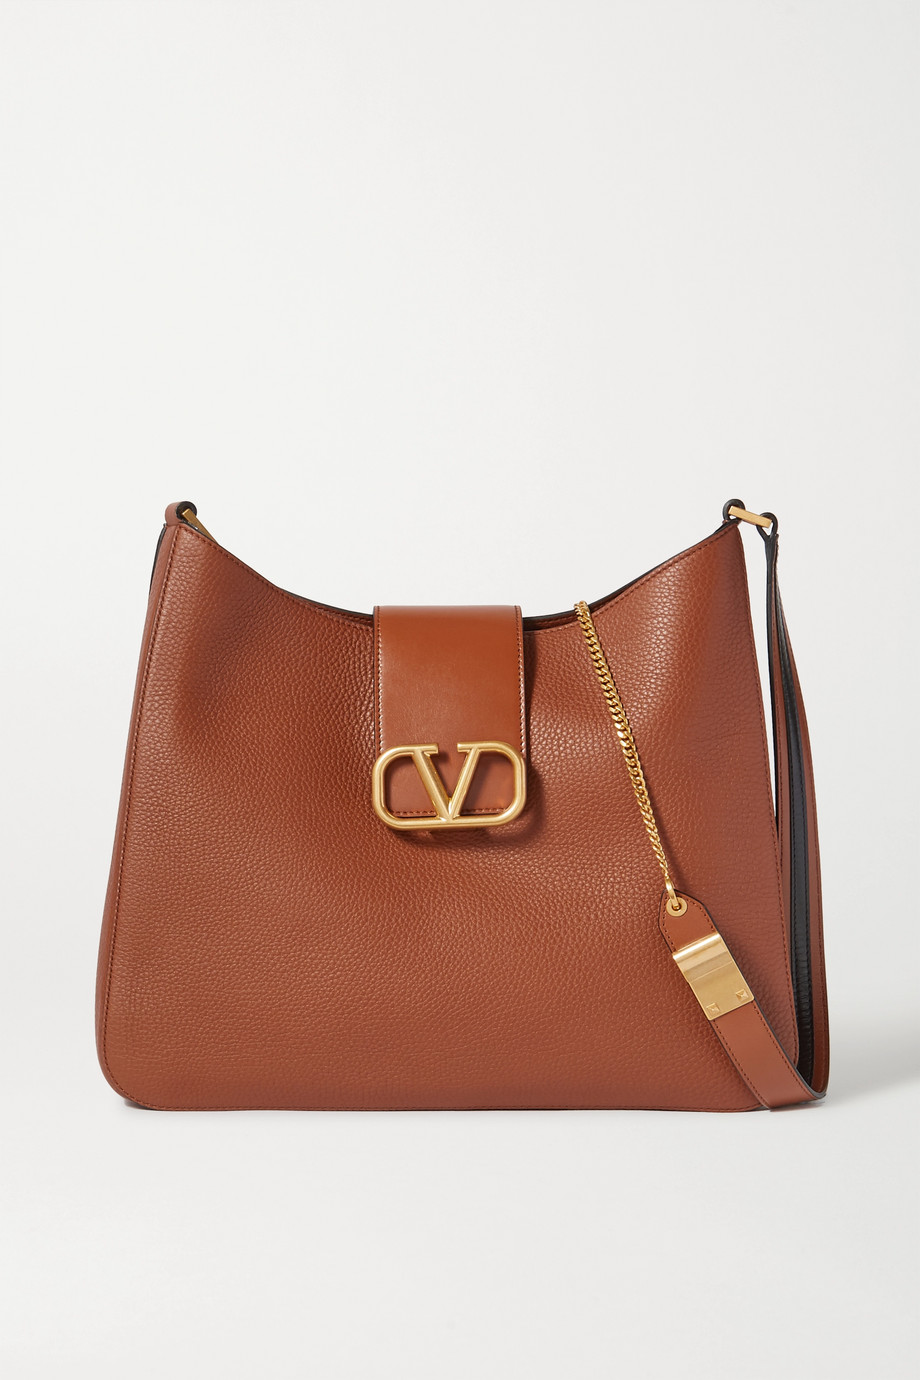 Valentino Valentino Garavani VSLING textured-leather shoulder bag